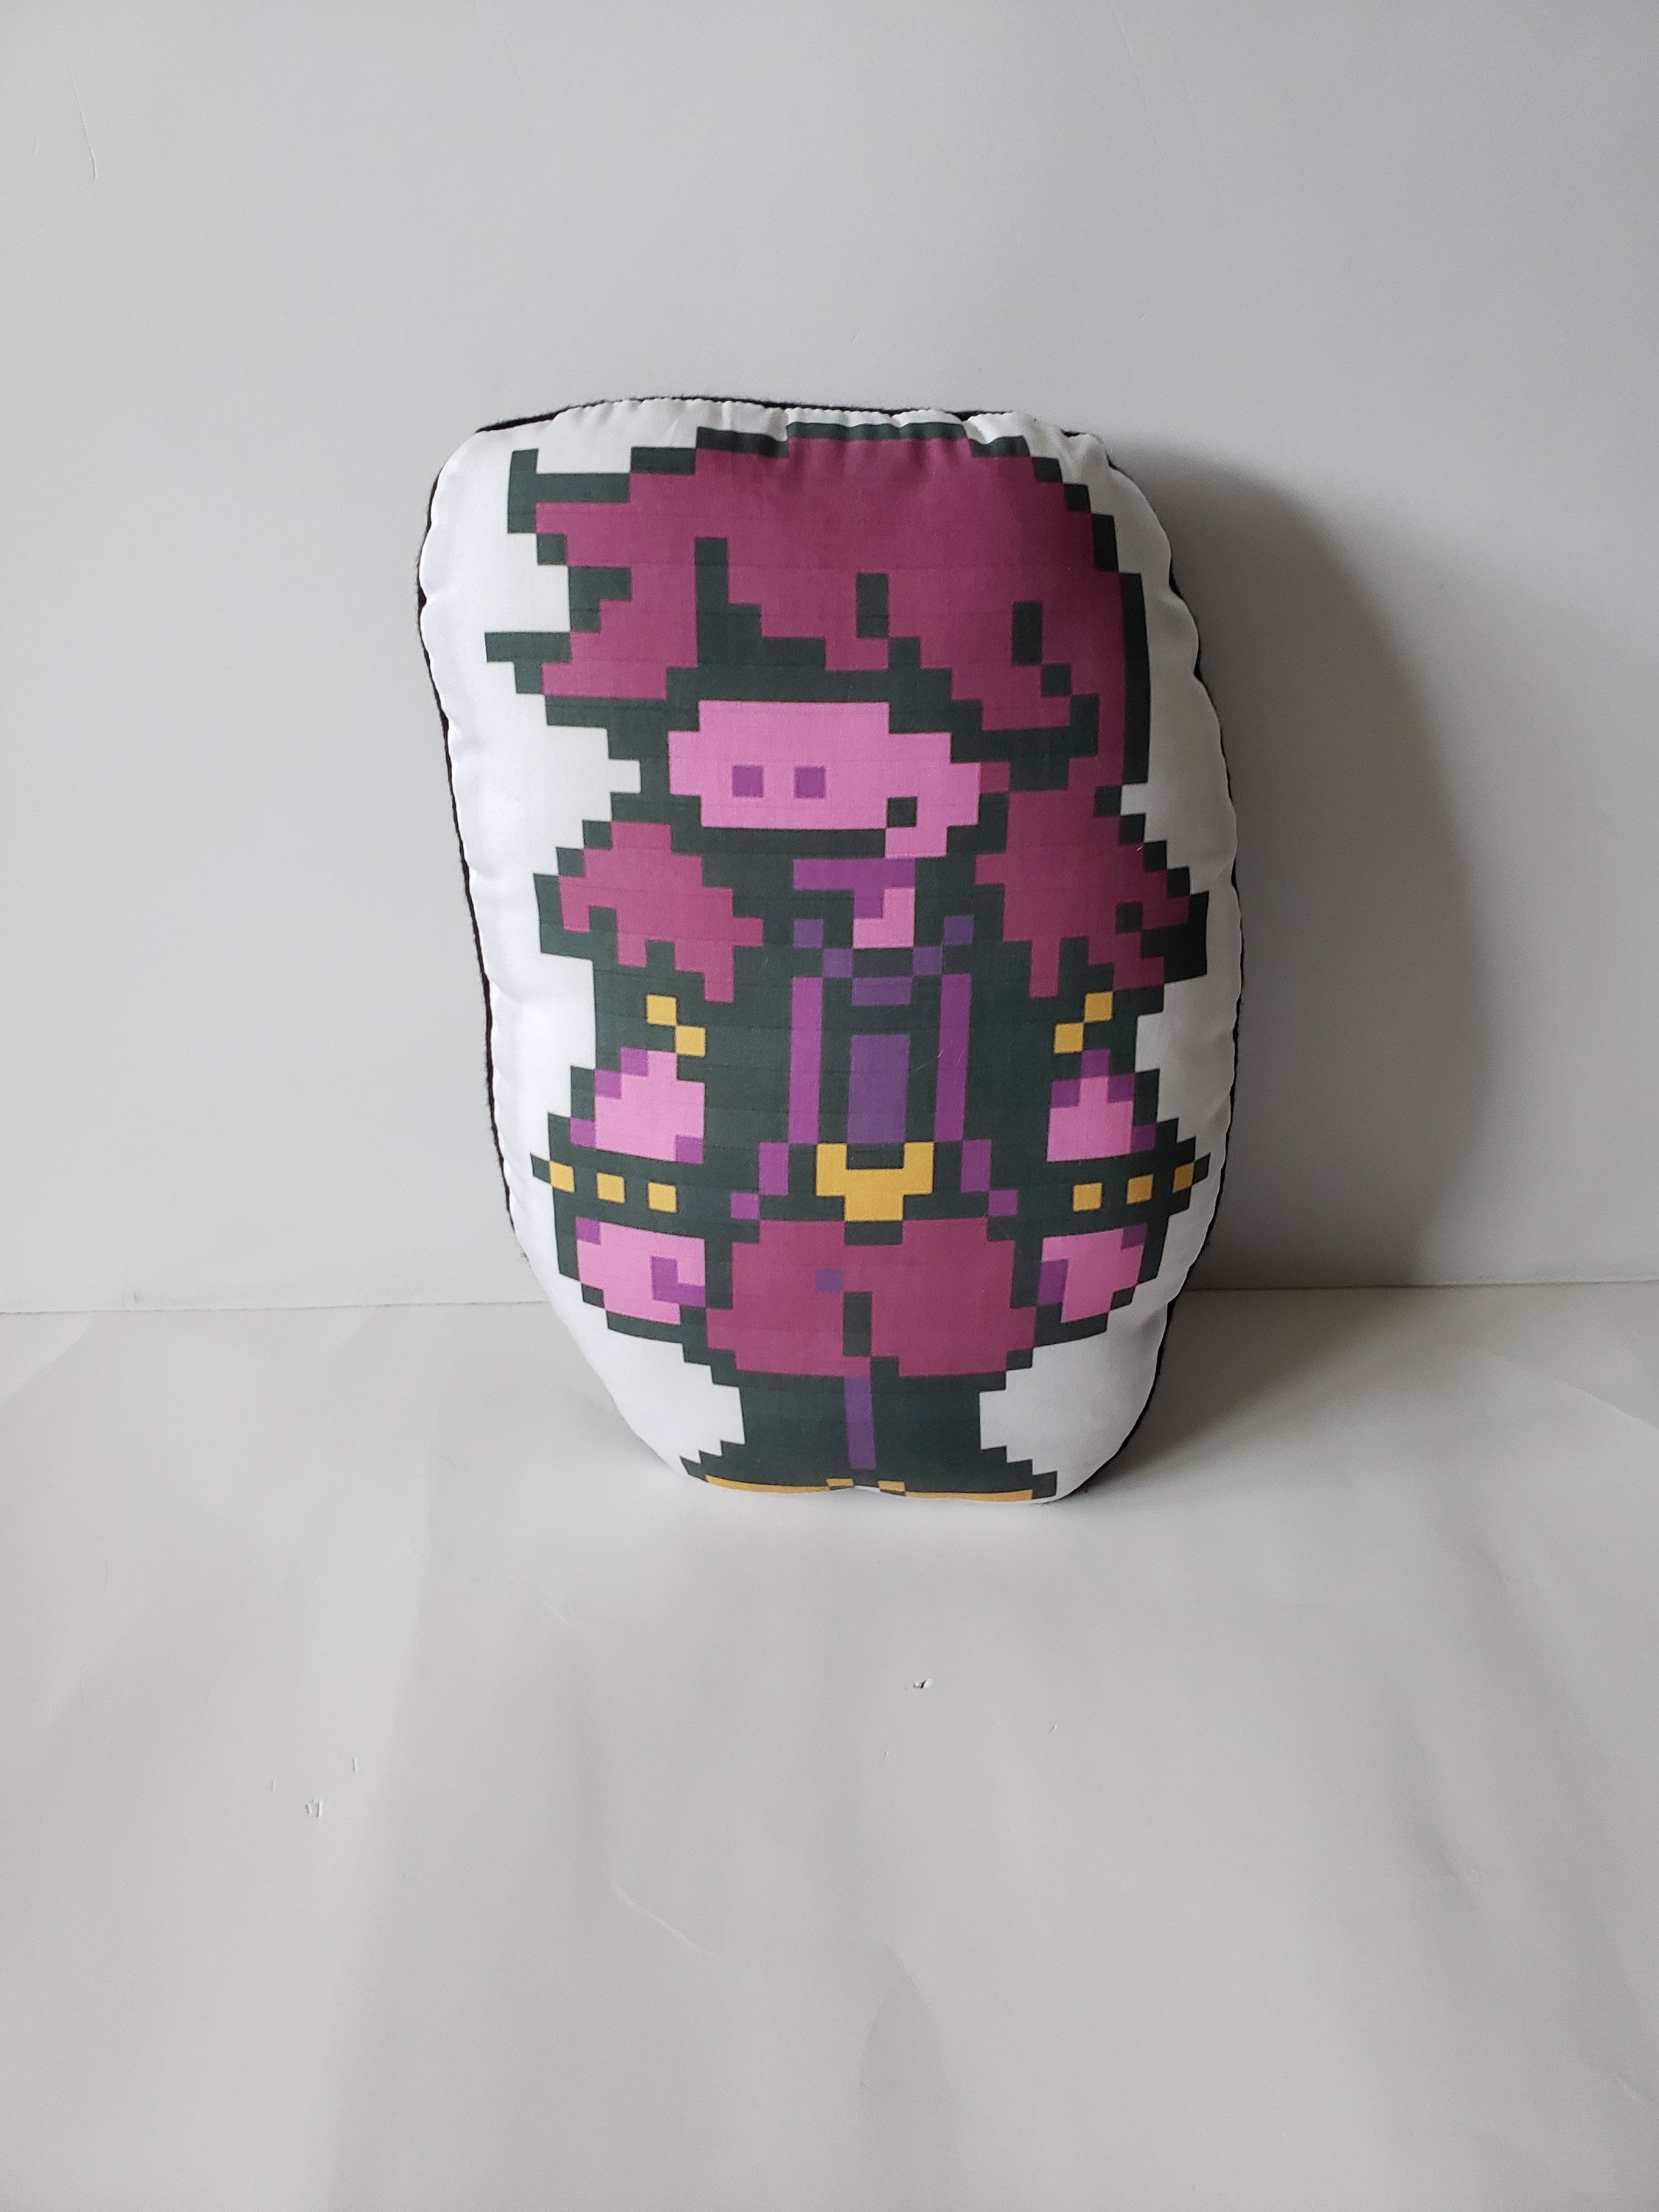 Delta Rune Susie Pillow Plush Overworld Version Etsy